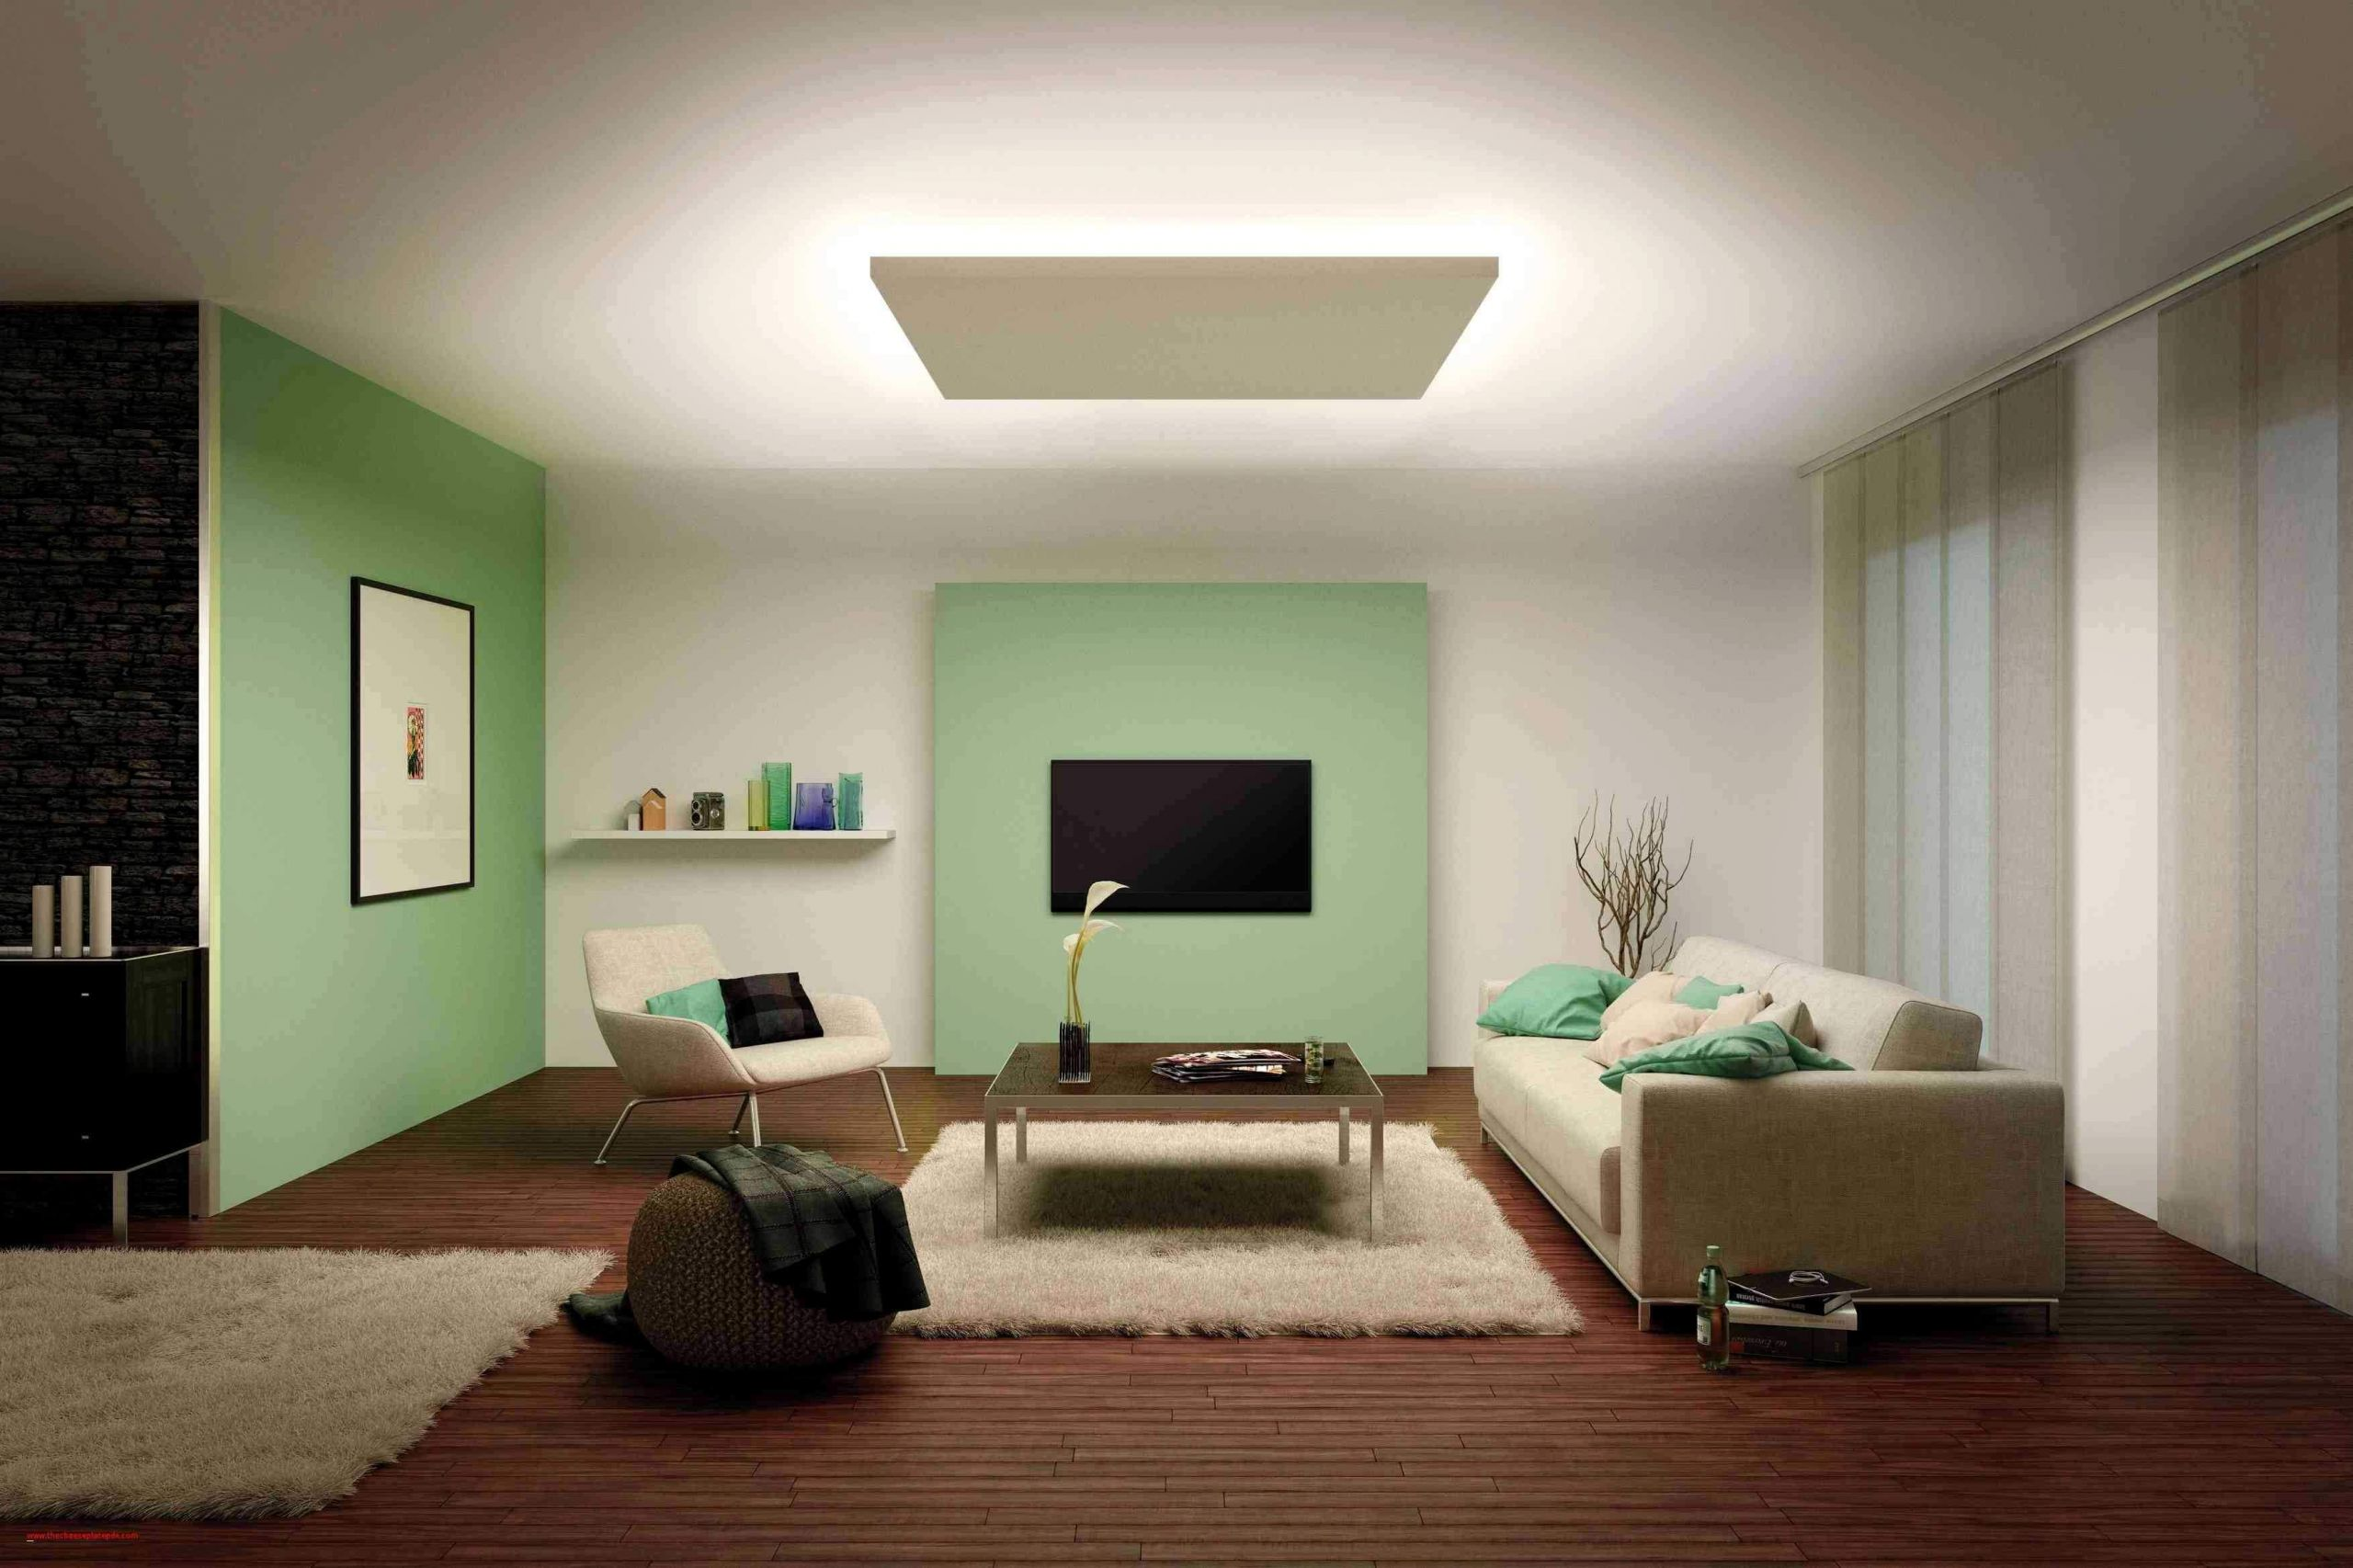 Led Beleuchtung Wohnzimmer Luxus Led Deckenleuchte Wohnzimmer Neu Wohnzimmer Licht